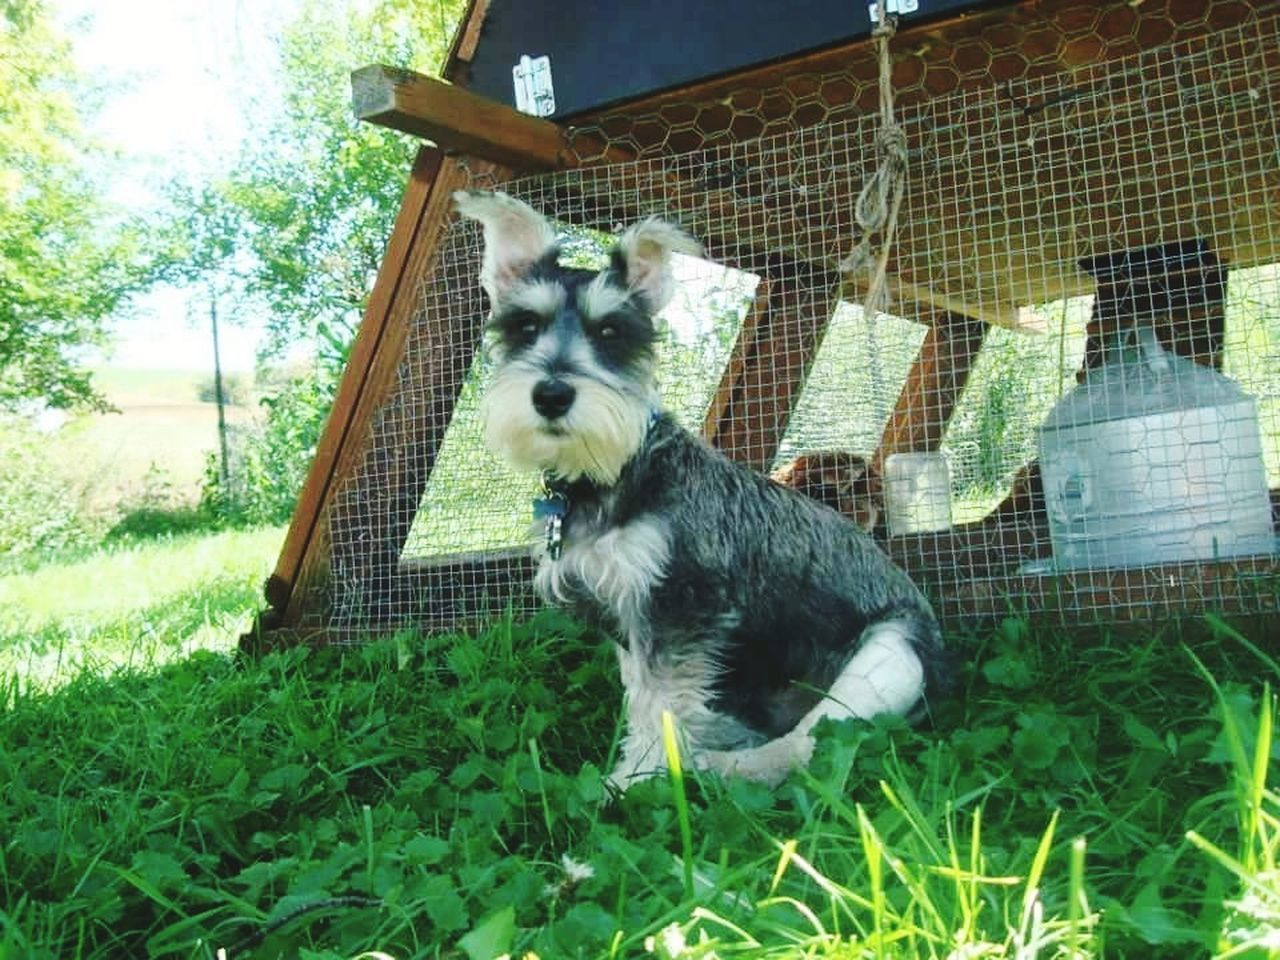 Pup on the farm Animal Themes One Animal Outdoors Green Color Nature Field Pets Cage Day No People